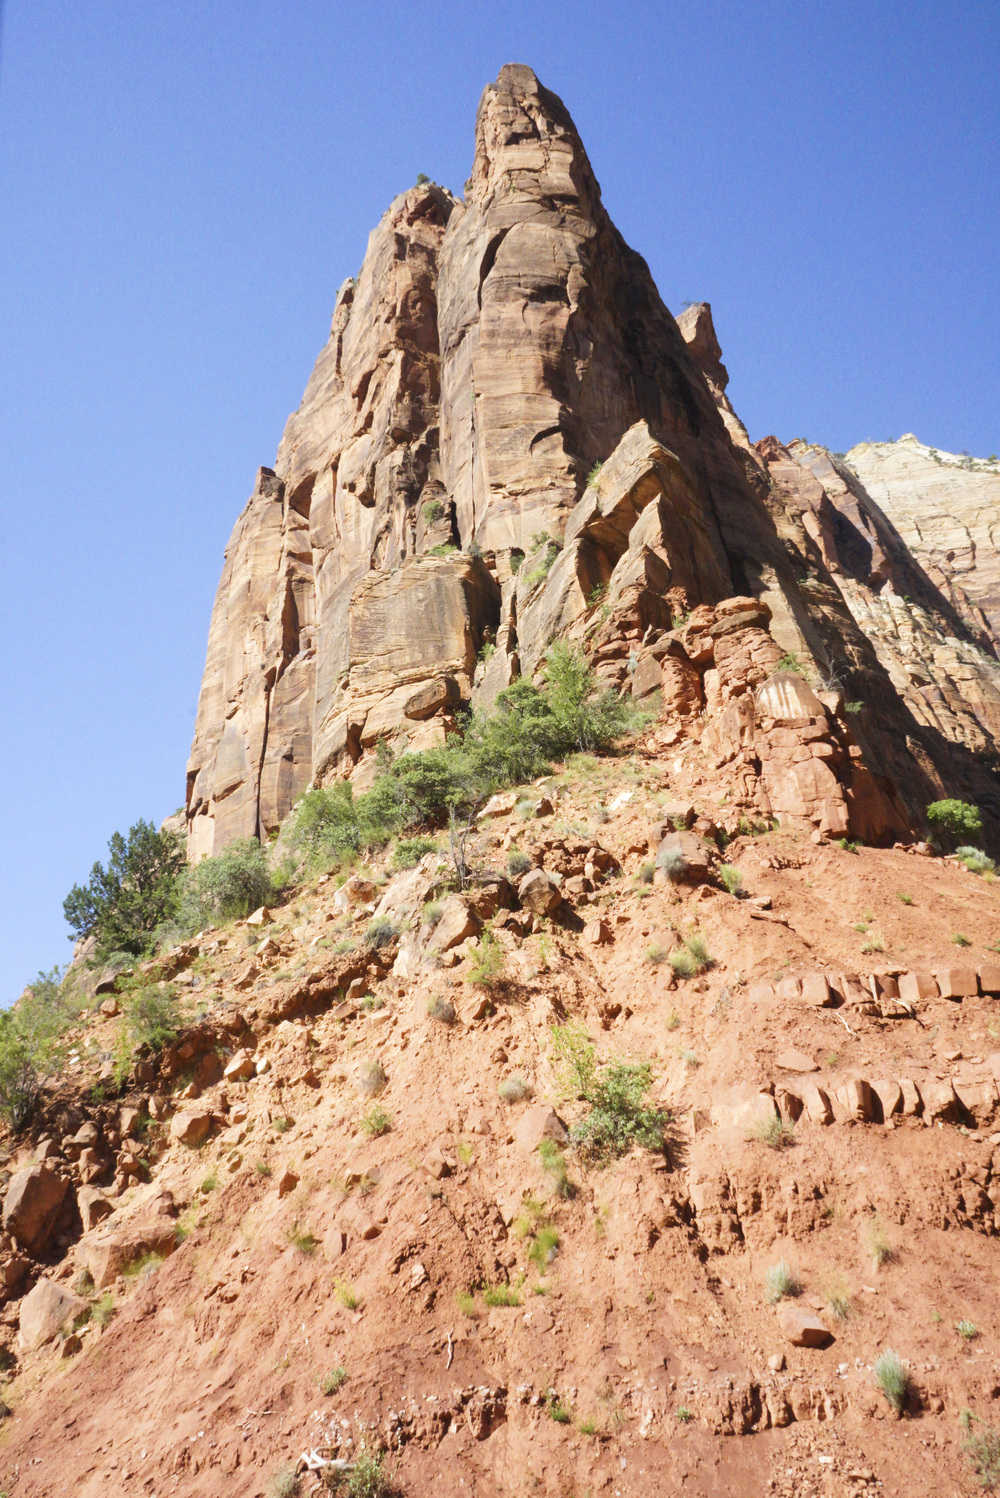 Zion National Park - Shannon Did What?